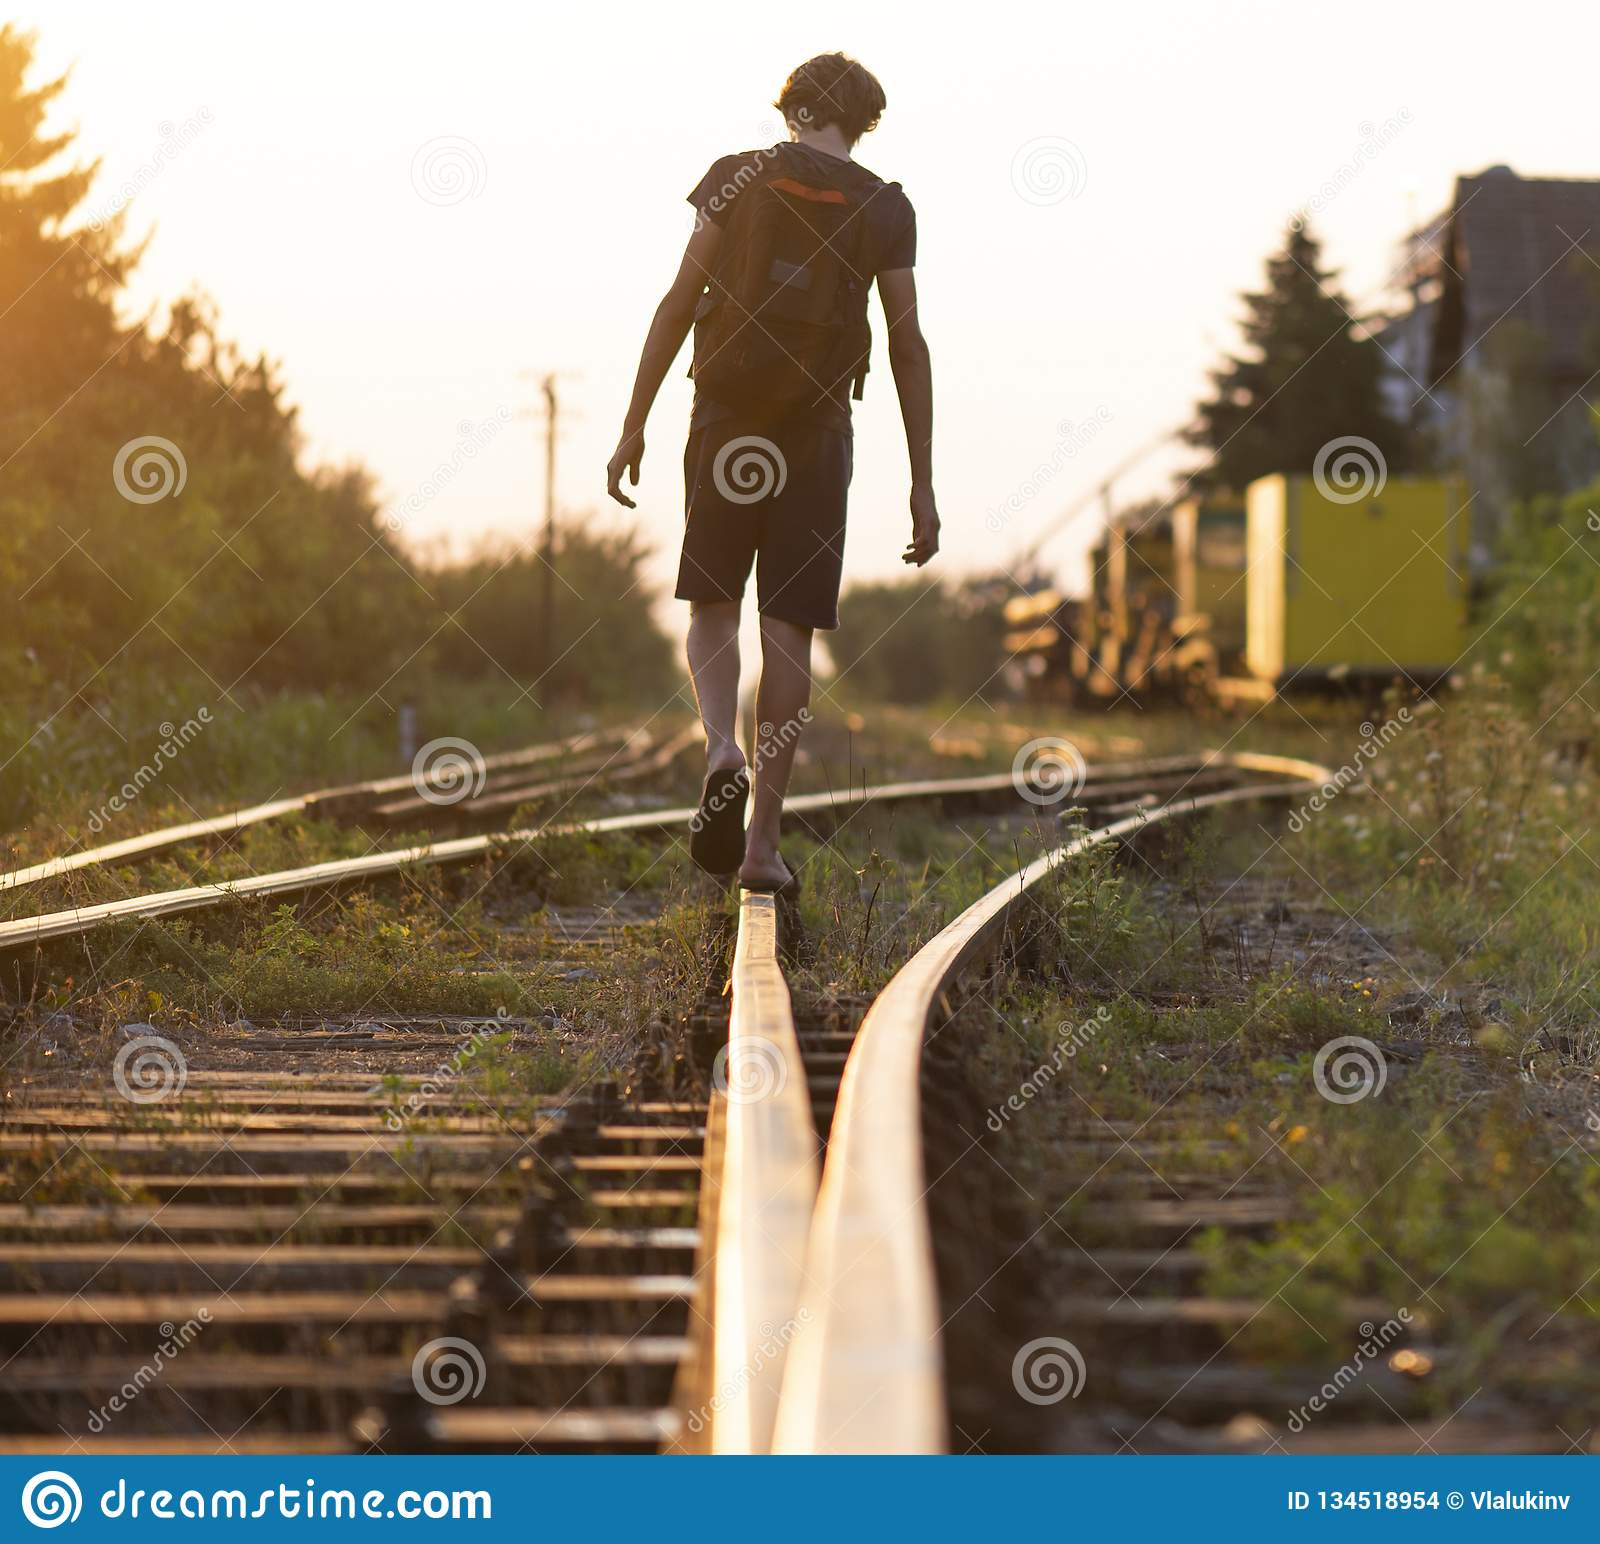 A lonely boy with a bag is walking on the rails